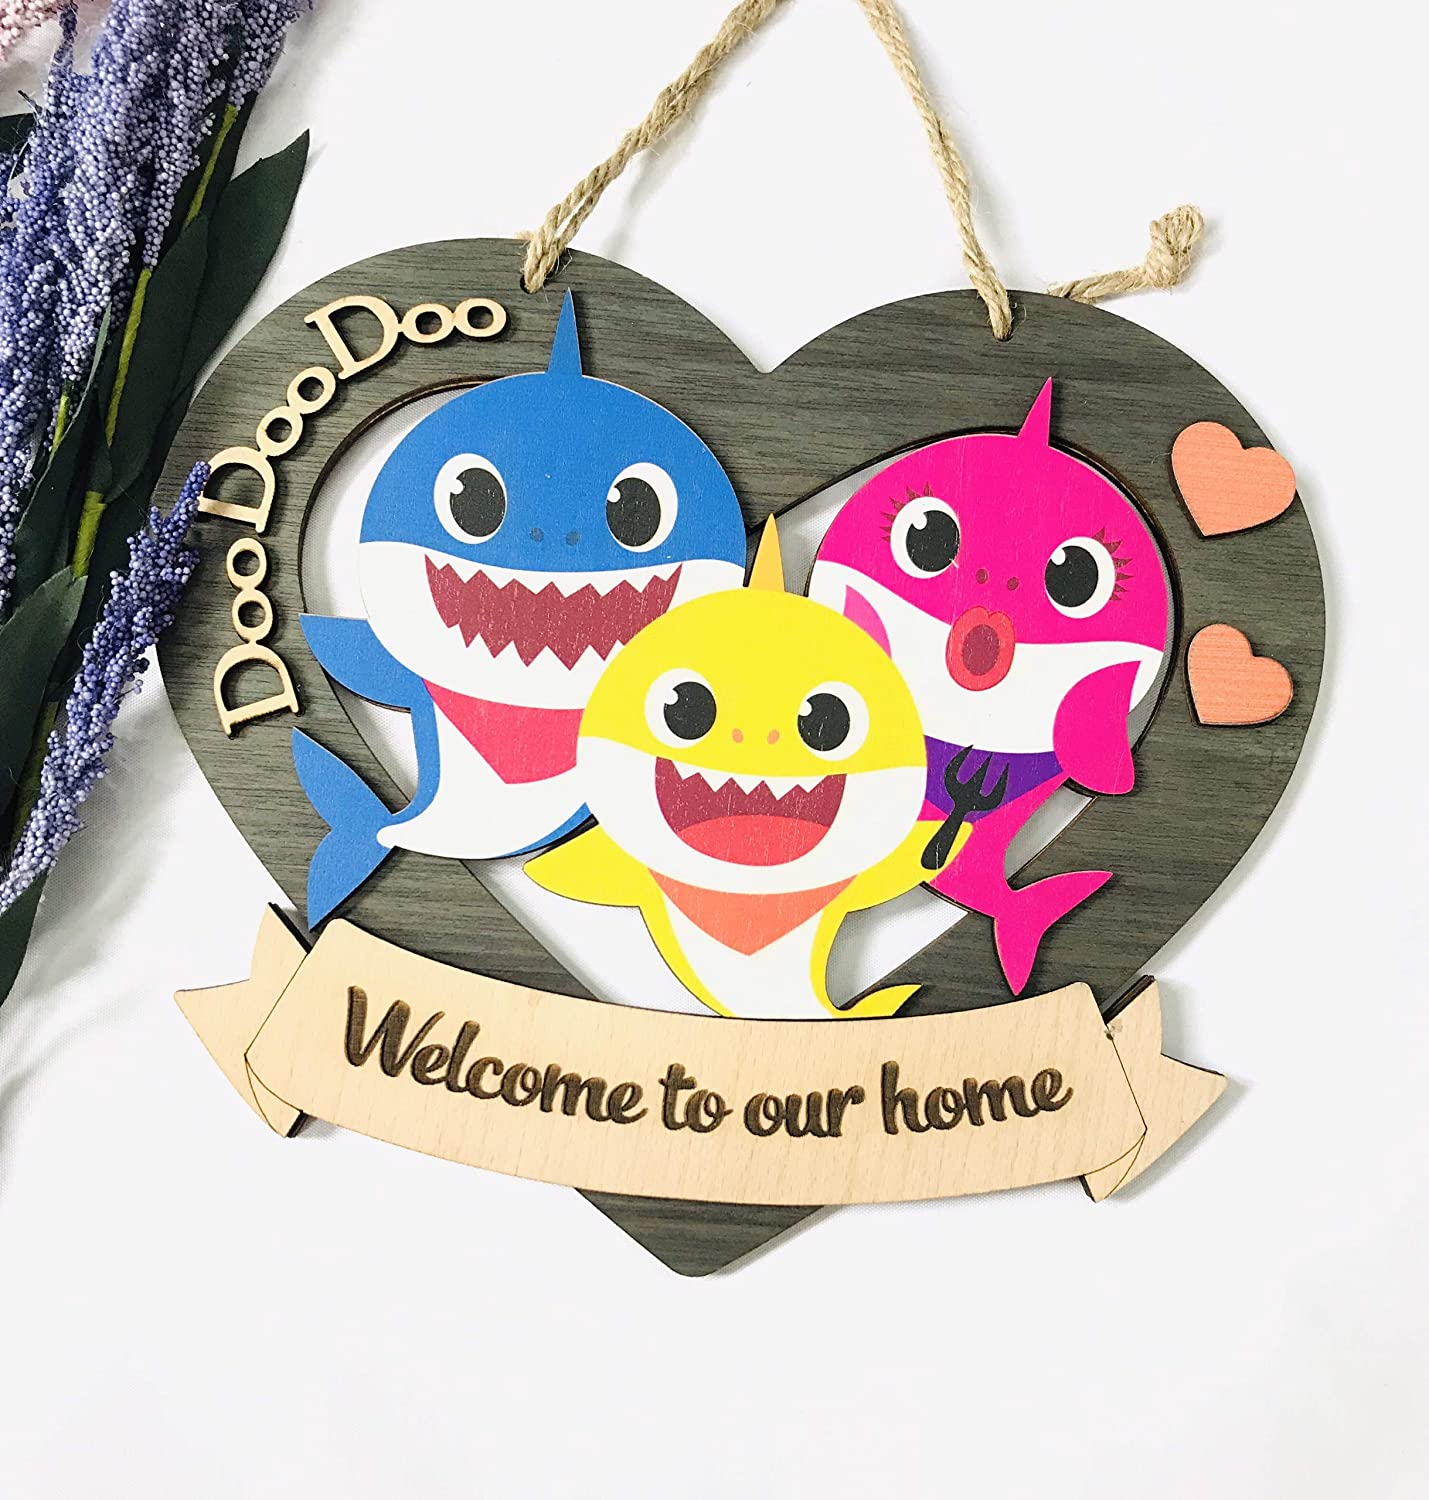 M&M CREATION Welcome to Our House Doo Doo Doo Sign with Funny Baby Song Front Door Decor Wood Made Hanging Sign Cute House Porch Decorations for Home Outdoor Indoor